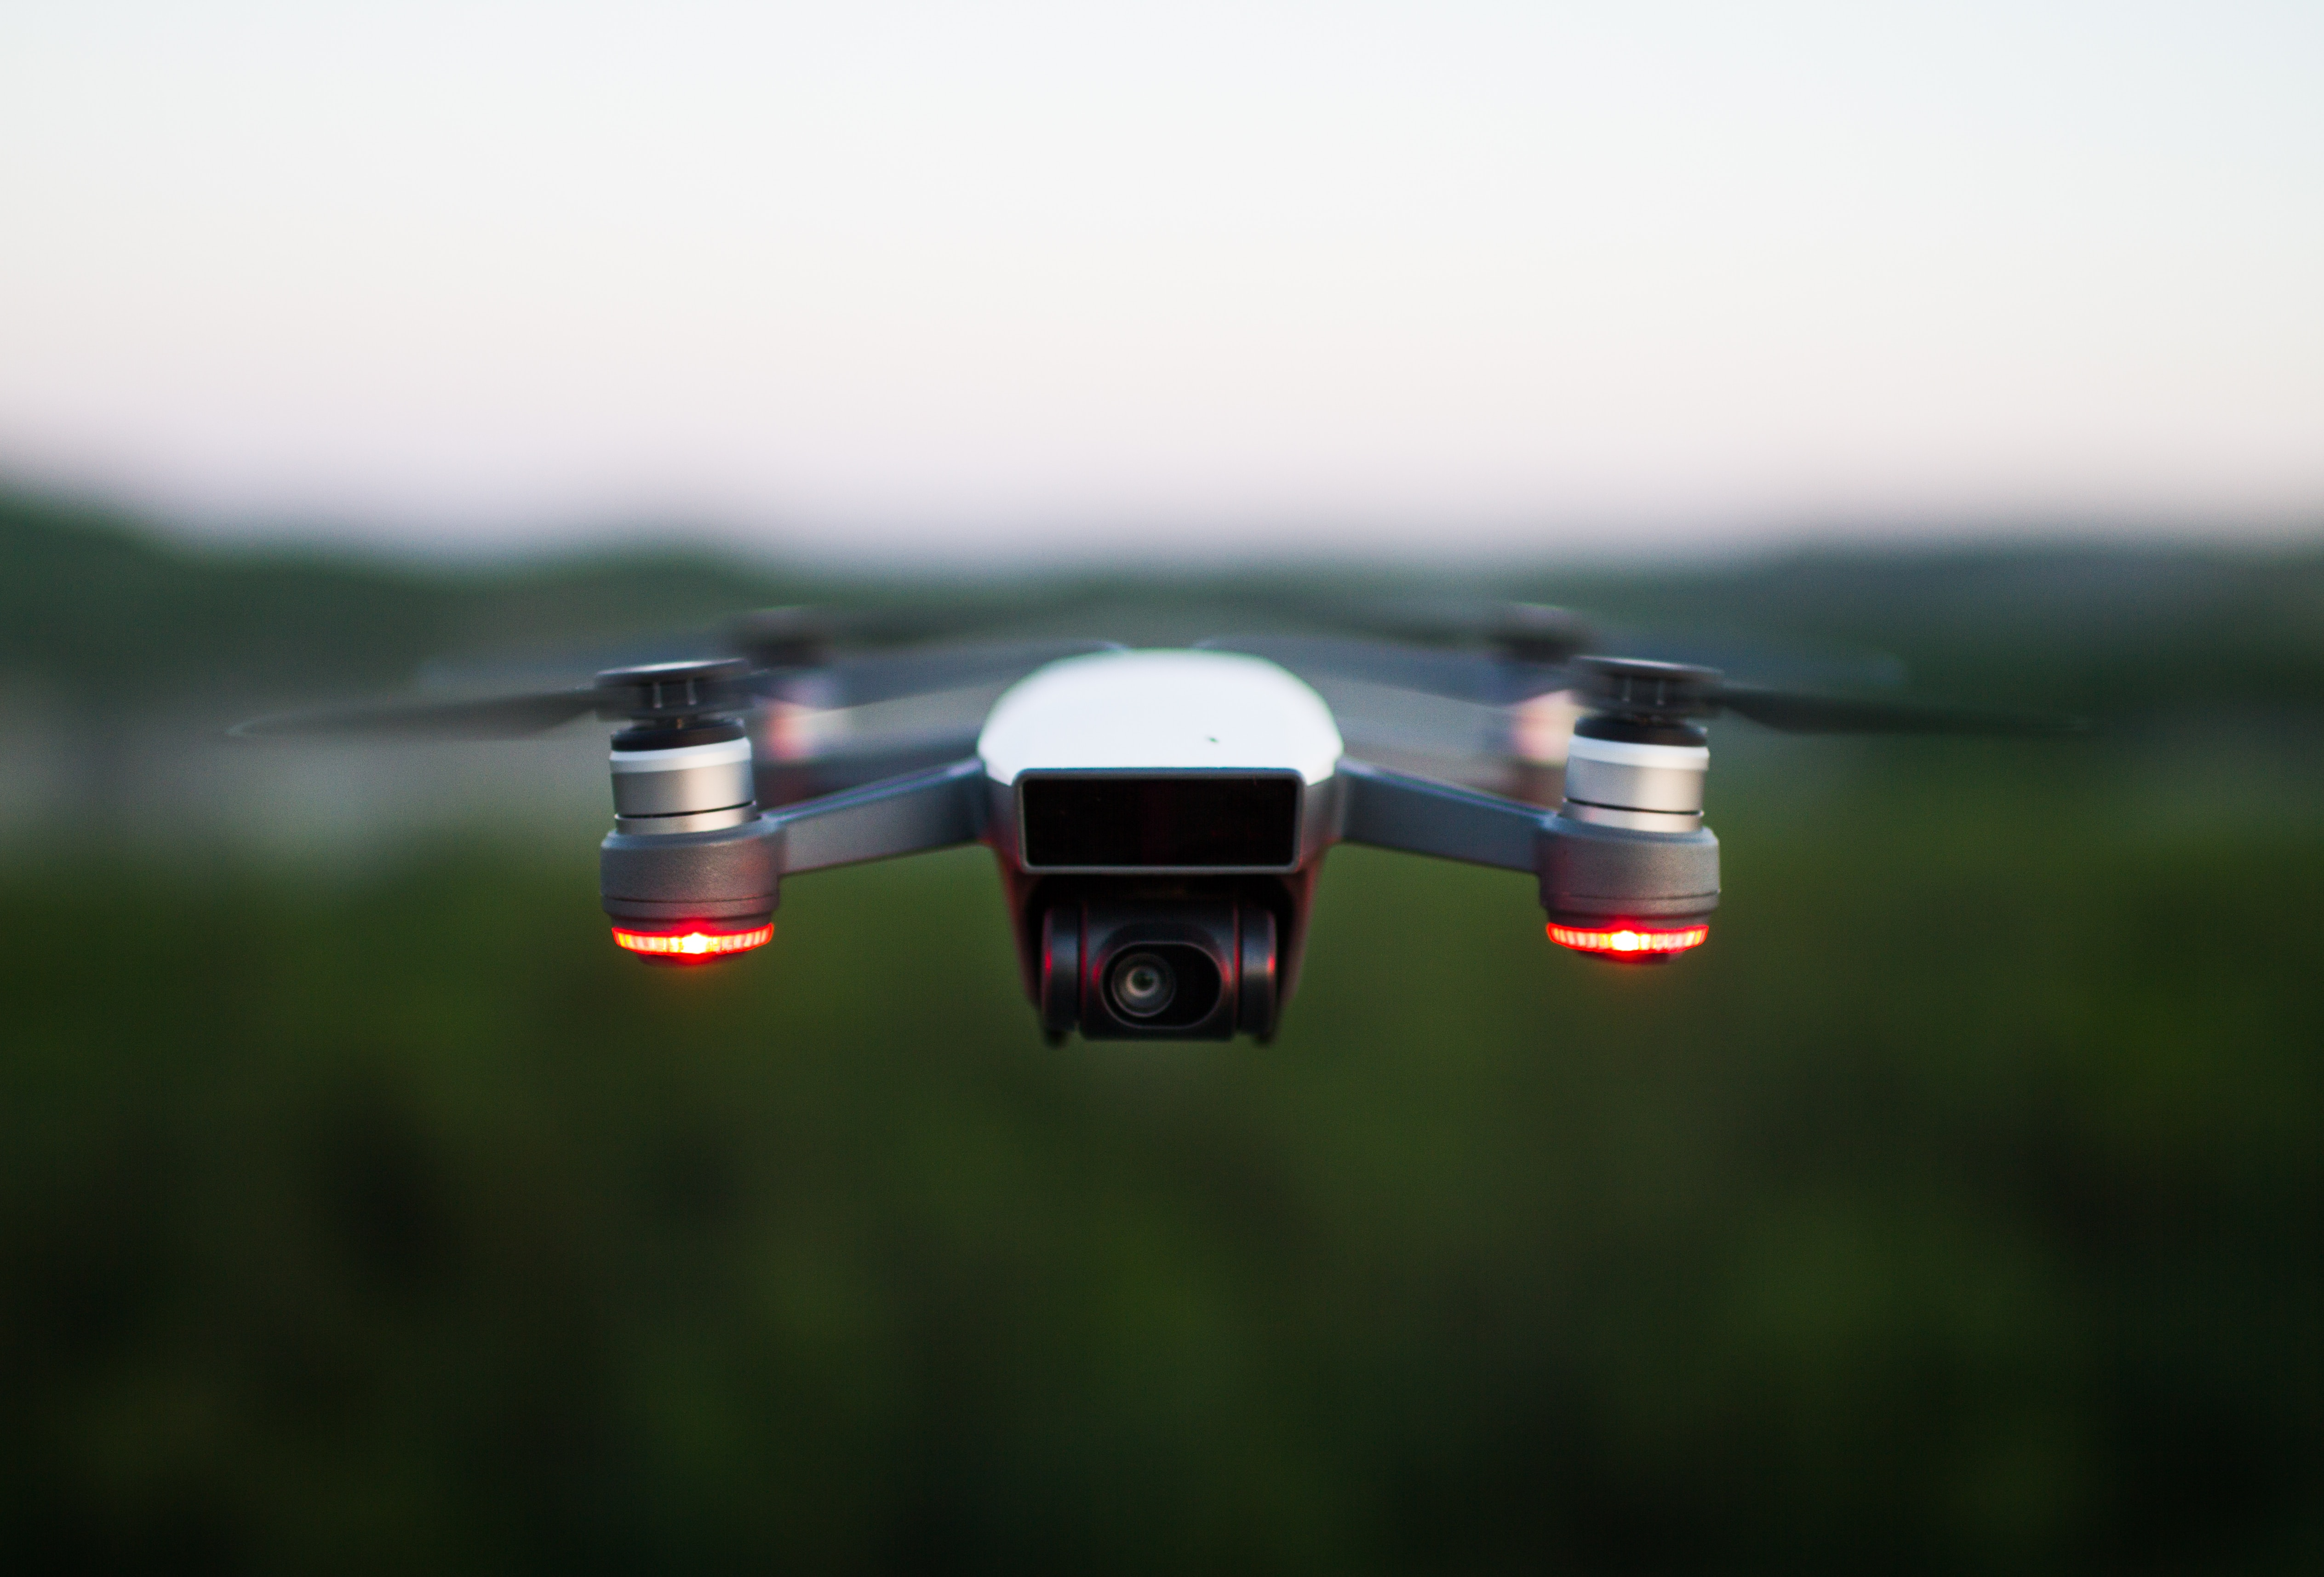 a four rotor drone